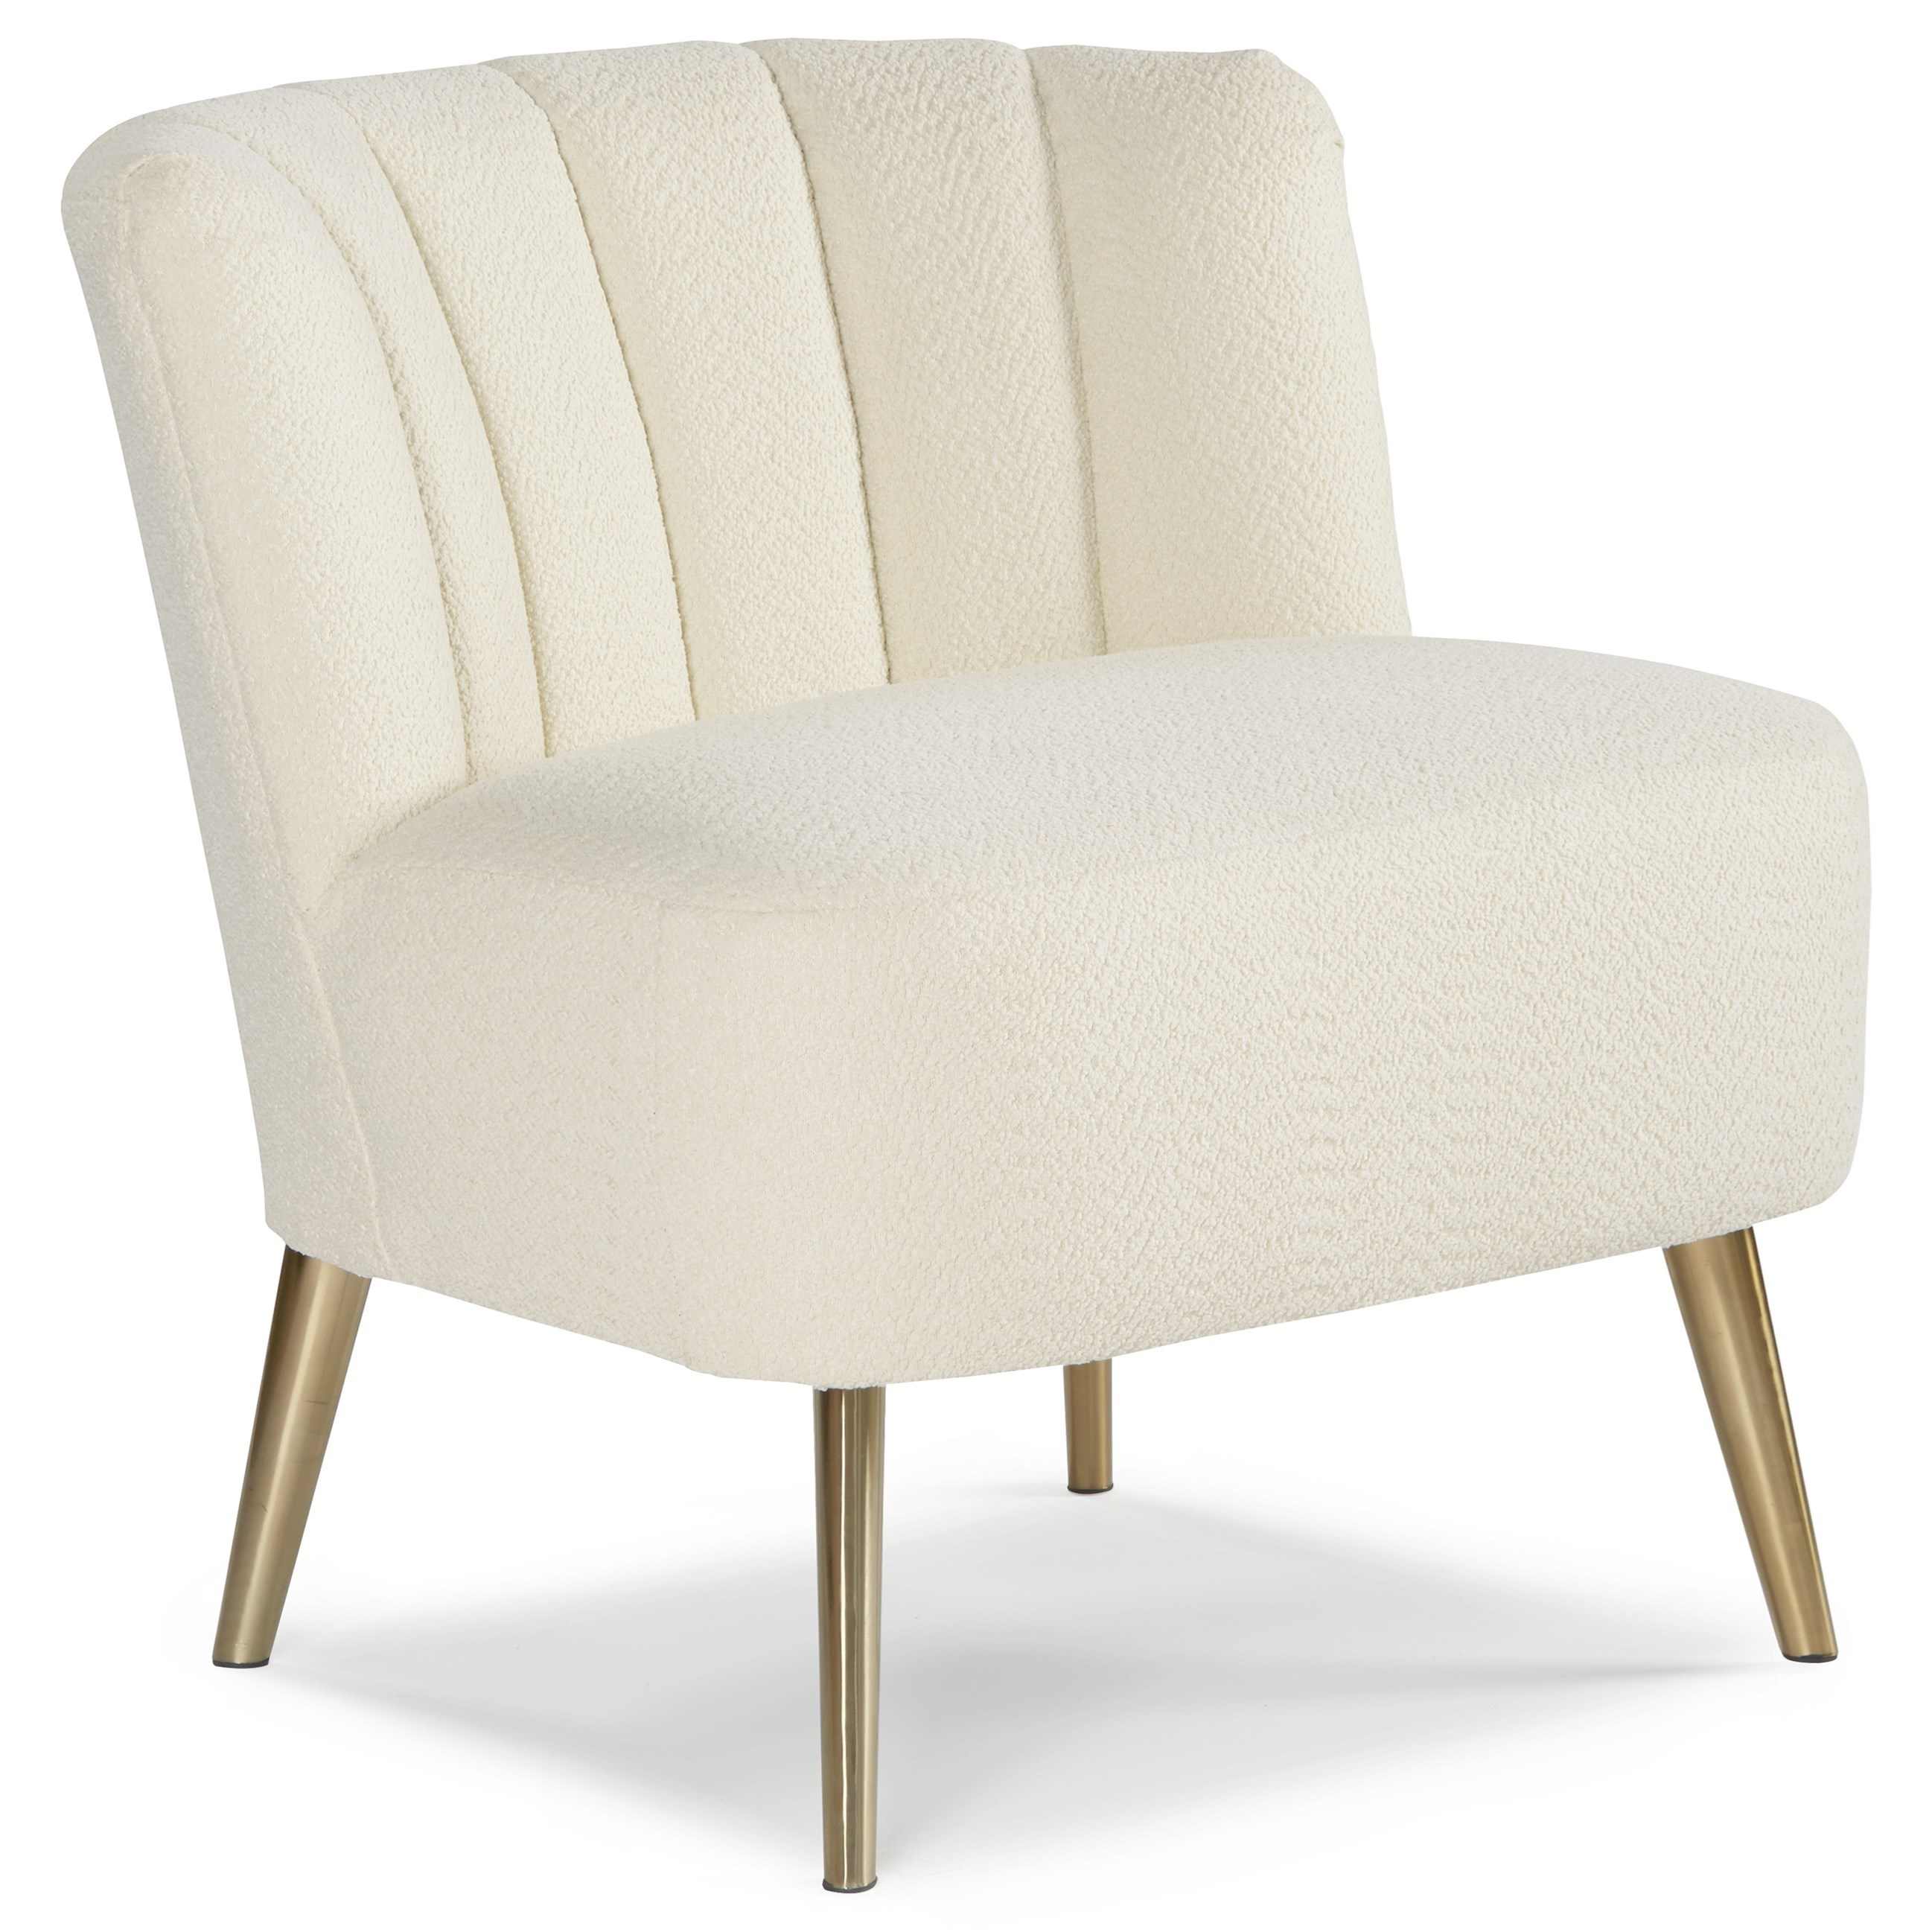 Best Xpress - Ameretta Accent Chair by Best Home Furnishings at Rooms and Rest